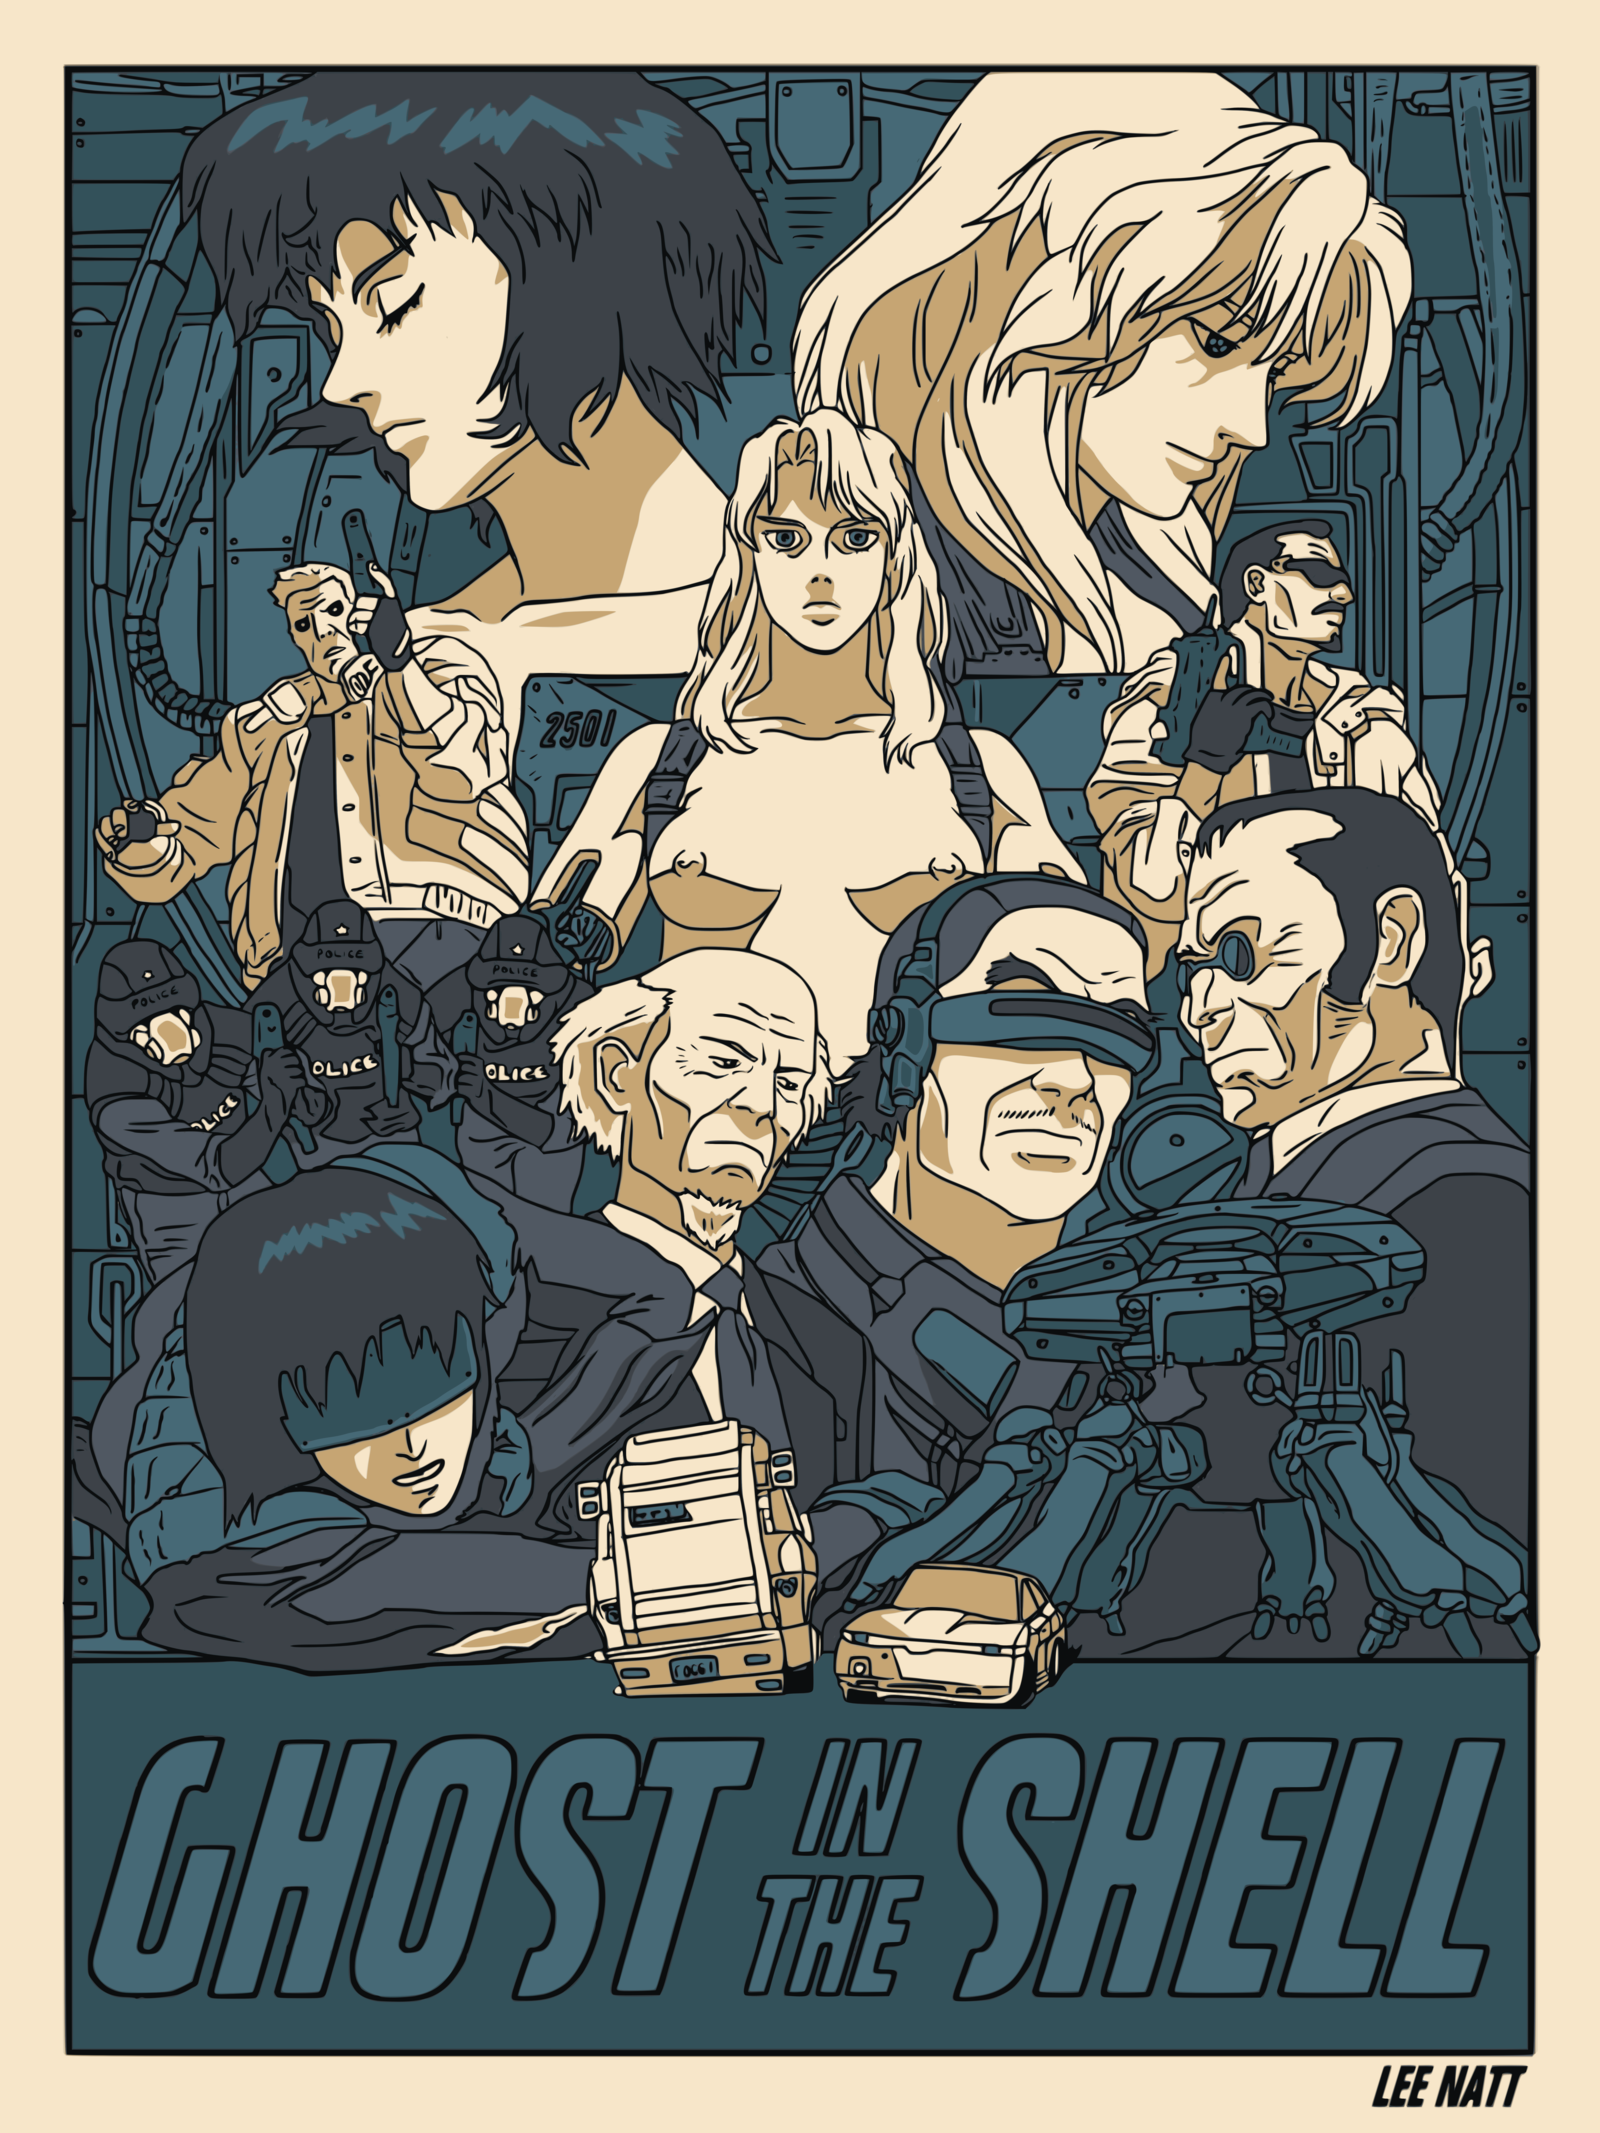 Ghost In The Shell Poster By Leenatt On Deviantart Ghost In The Shell Anime Ghost Anime